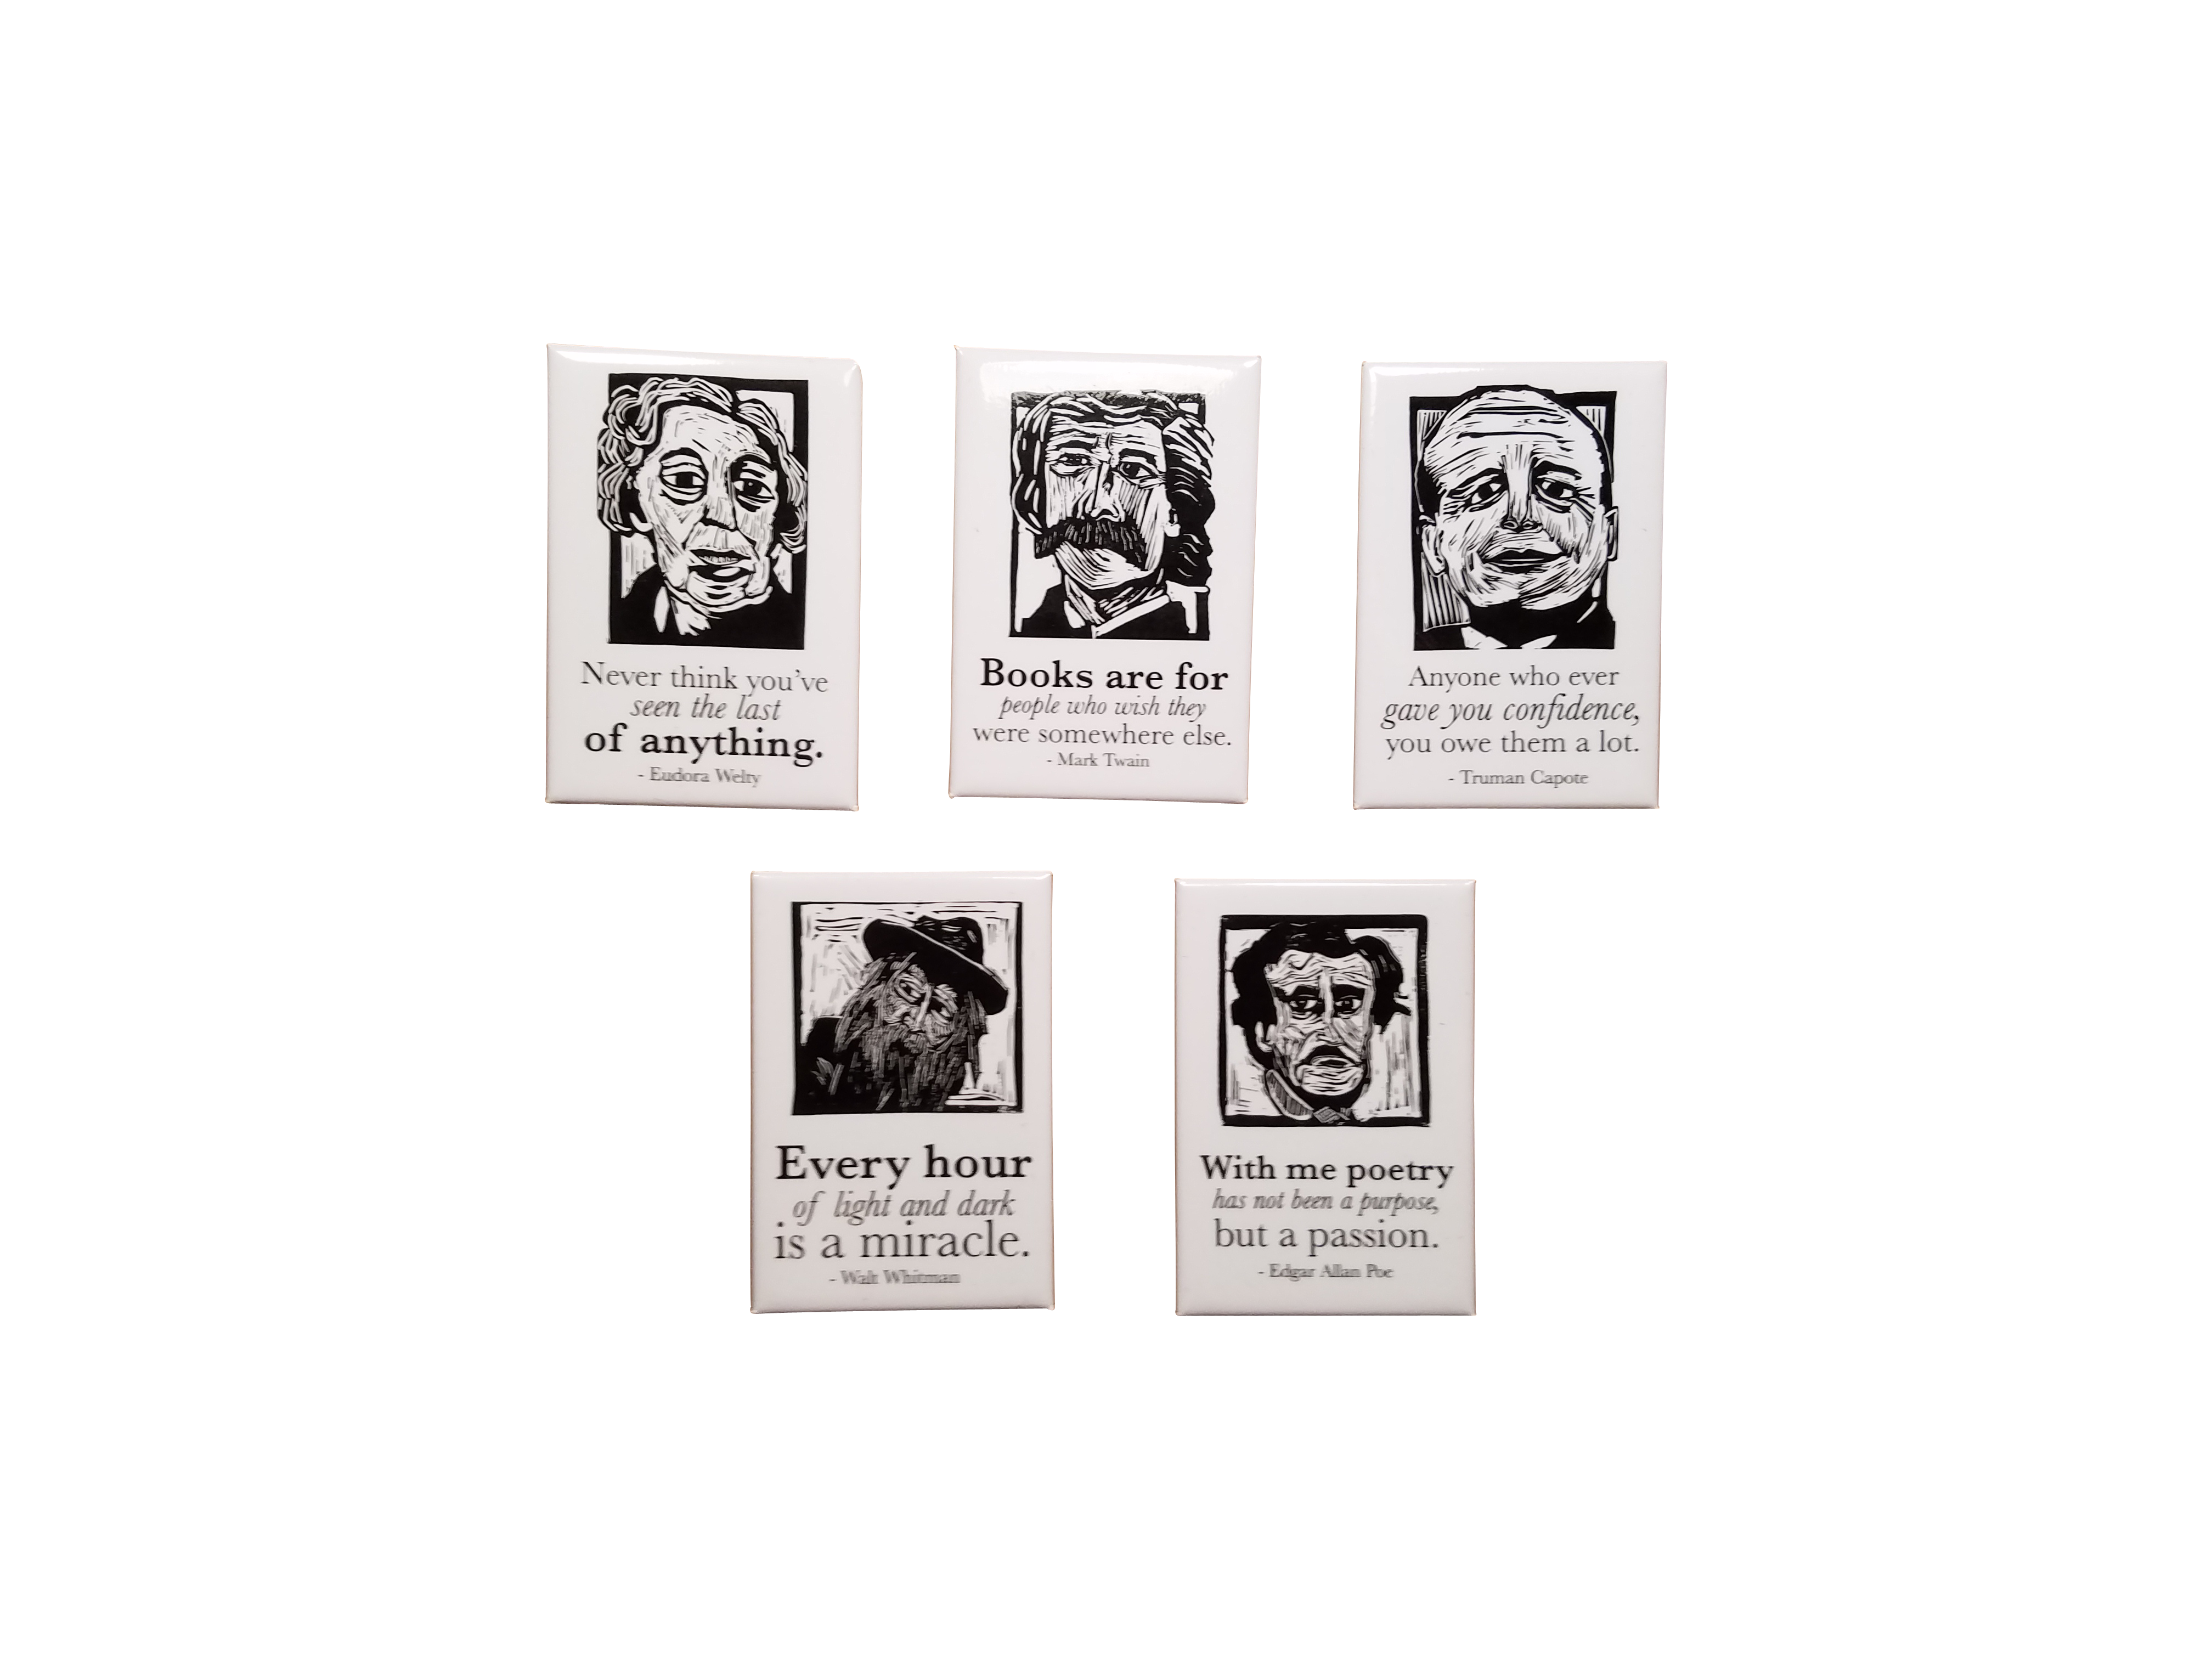 gifts for book lovers Magnet set of Edgar Allan Poe, Mark Twain, Walt Whitman, Eudora Welty and Truman Capote,  literary gifts by Eastgrove Studio